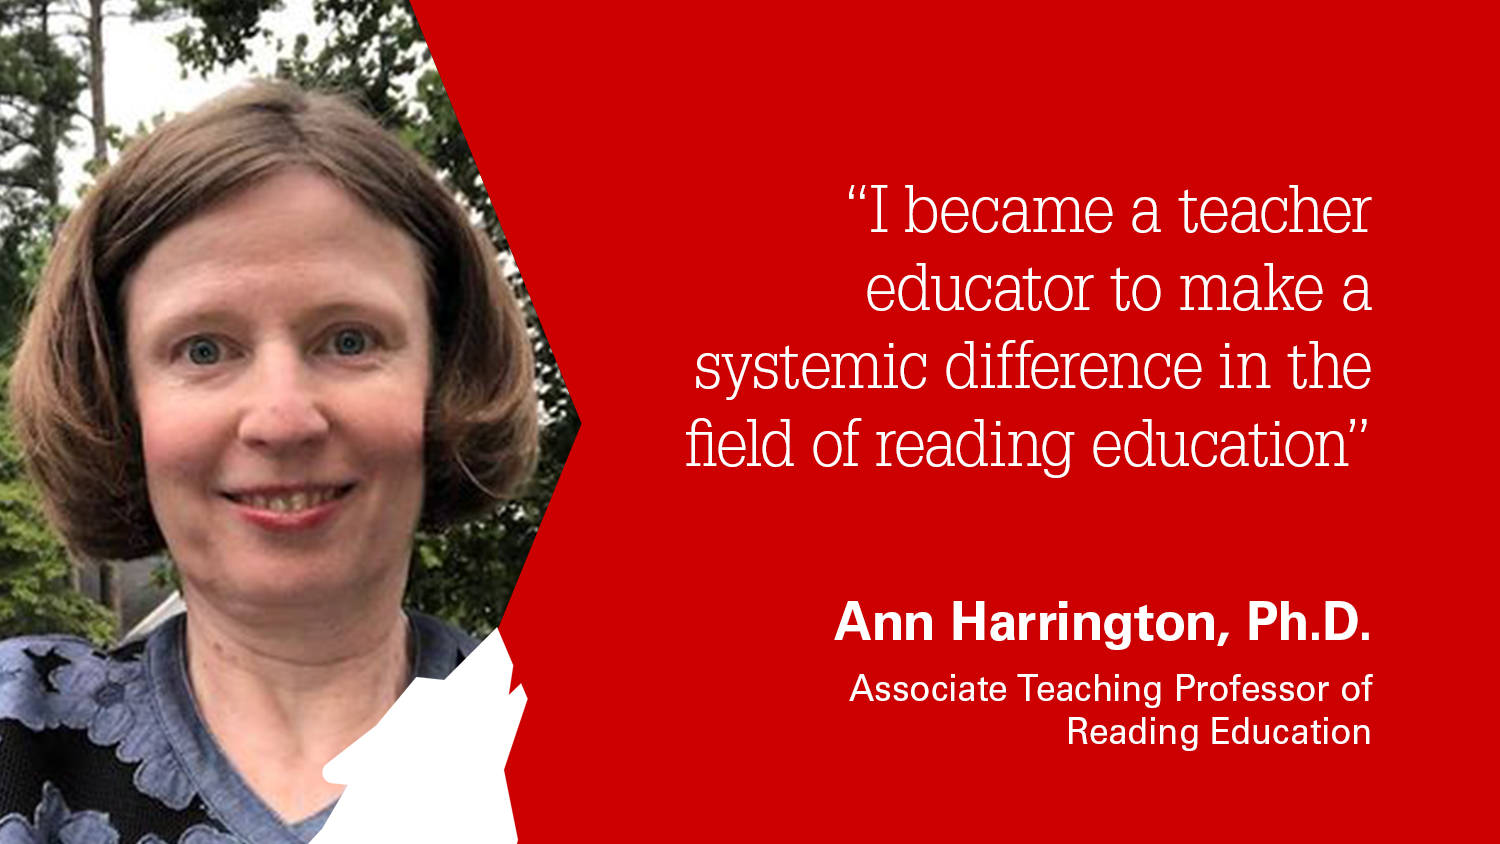 NC State College of Education Associate Teaching Professor Ann Harrington, Ph.D.